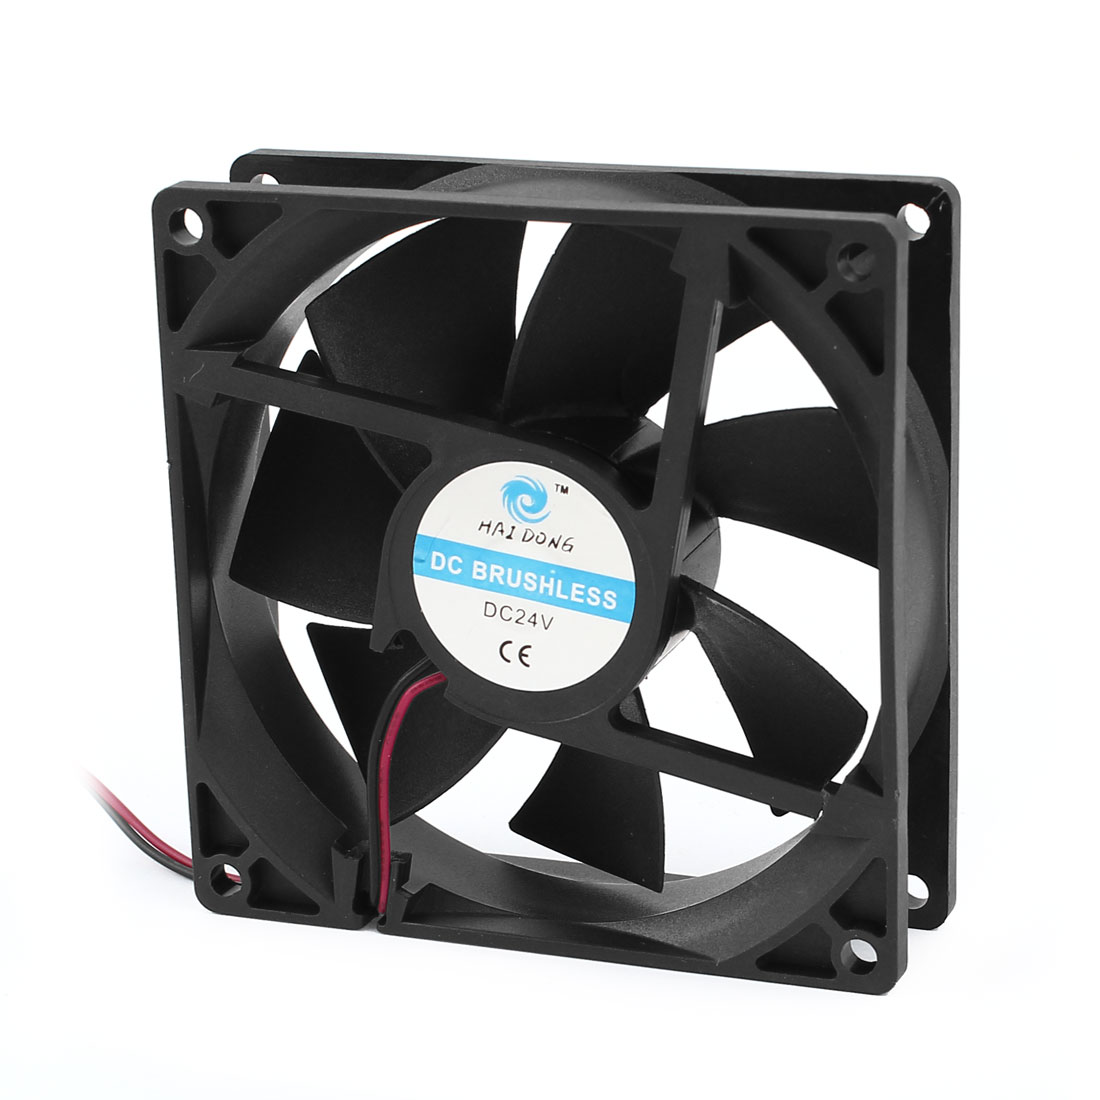 DC 24V 92x25mm Plastic 7 Flabellums Cooling Fan w Dustproof Mesh for Computer Case